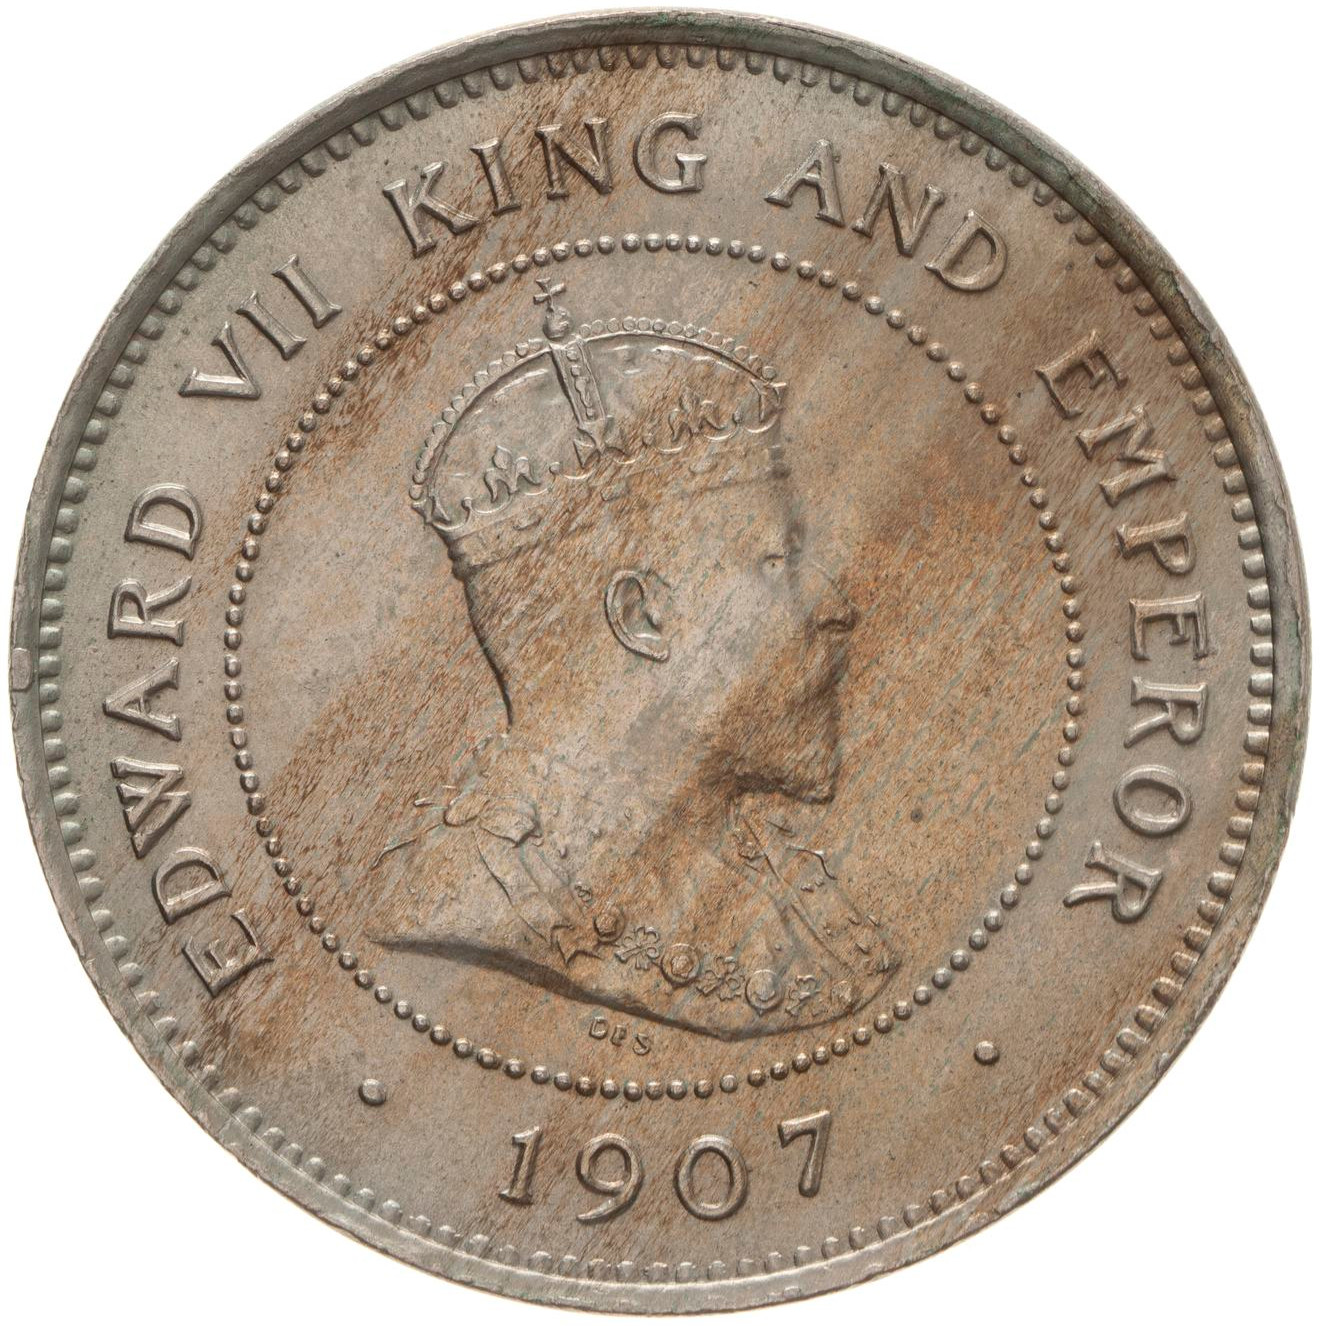 Five Cents 1907: Photo Coin - 5 Cents, British Honduras (Belize), 1907